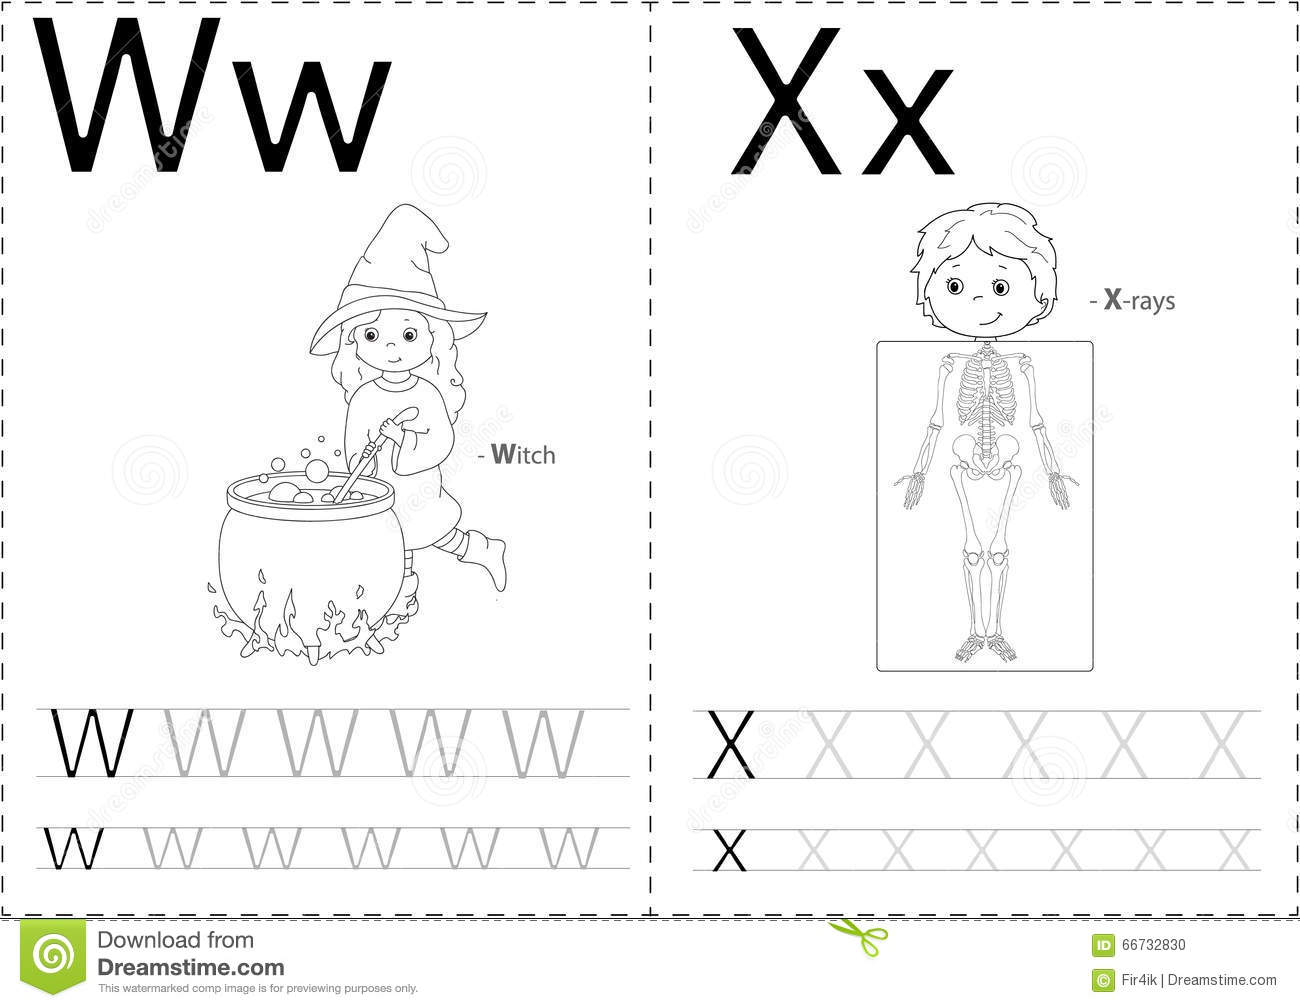 Cartoon Witch And X-rays. Alphabet Tracing Worksheet Stock Vector - Image: 66732830